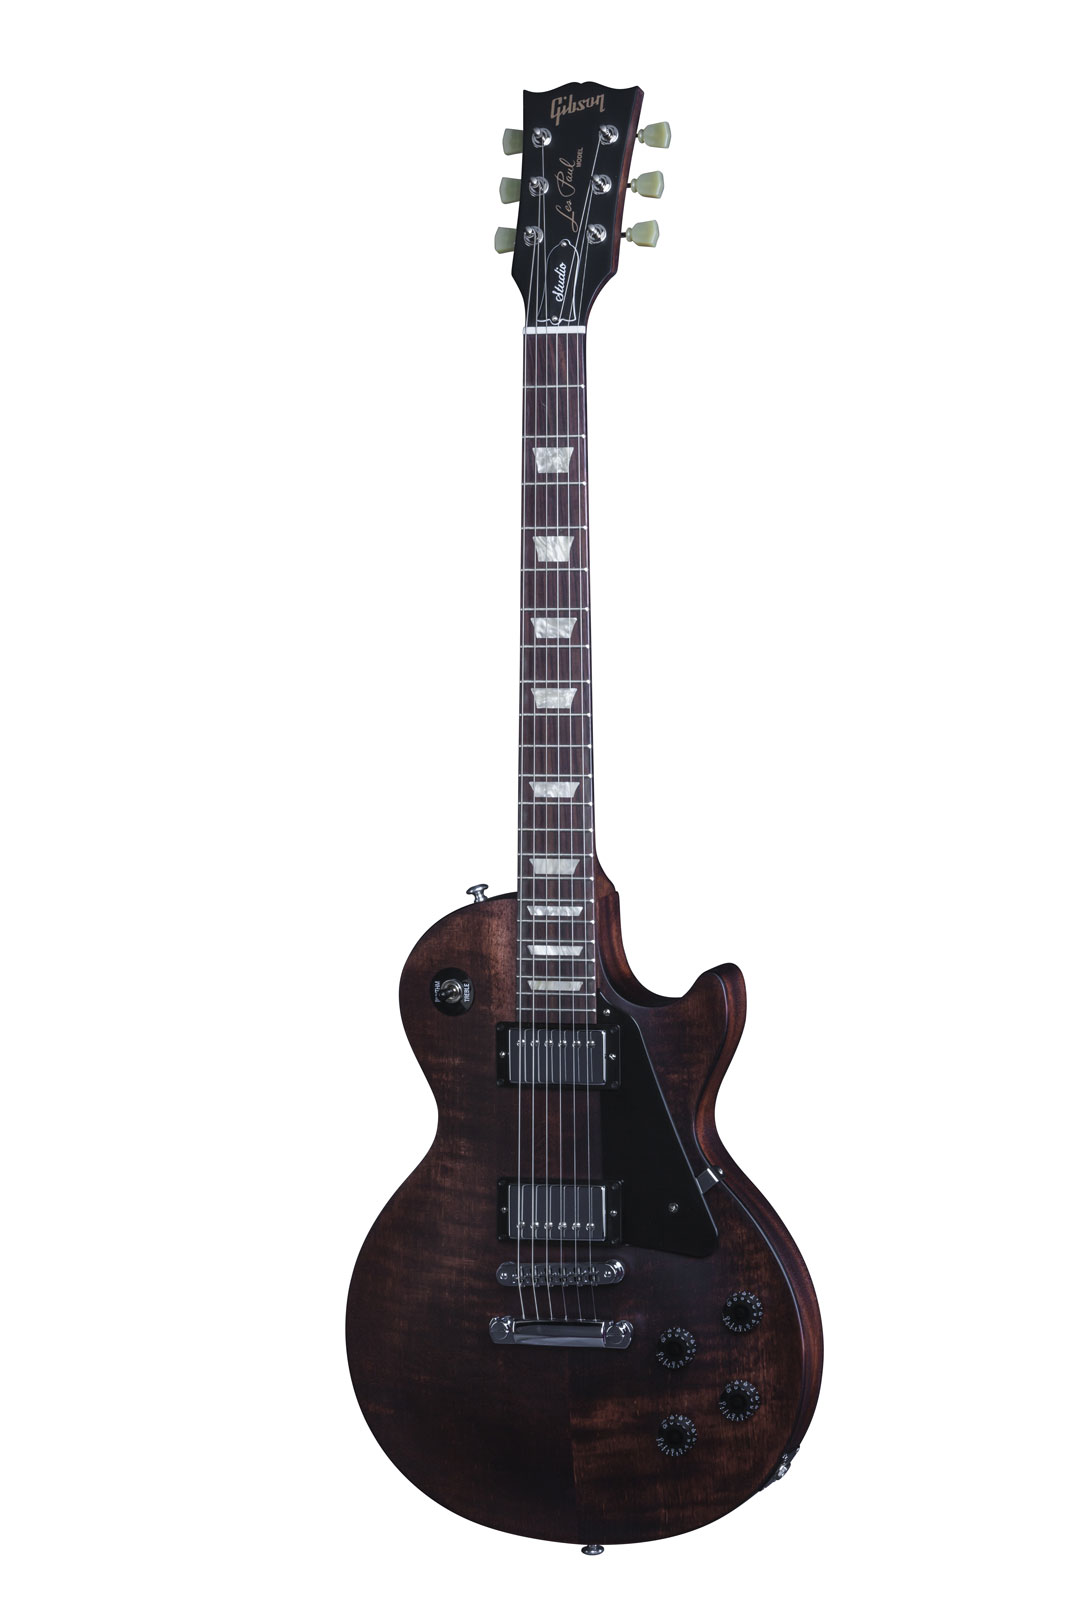 Gibson Les Paul Lp Studio Faded 2016 T Worn Brown + Housse